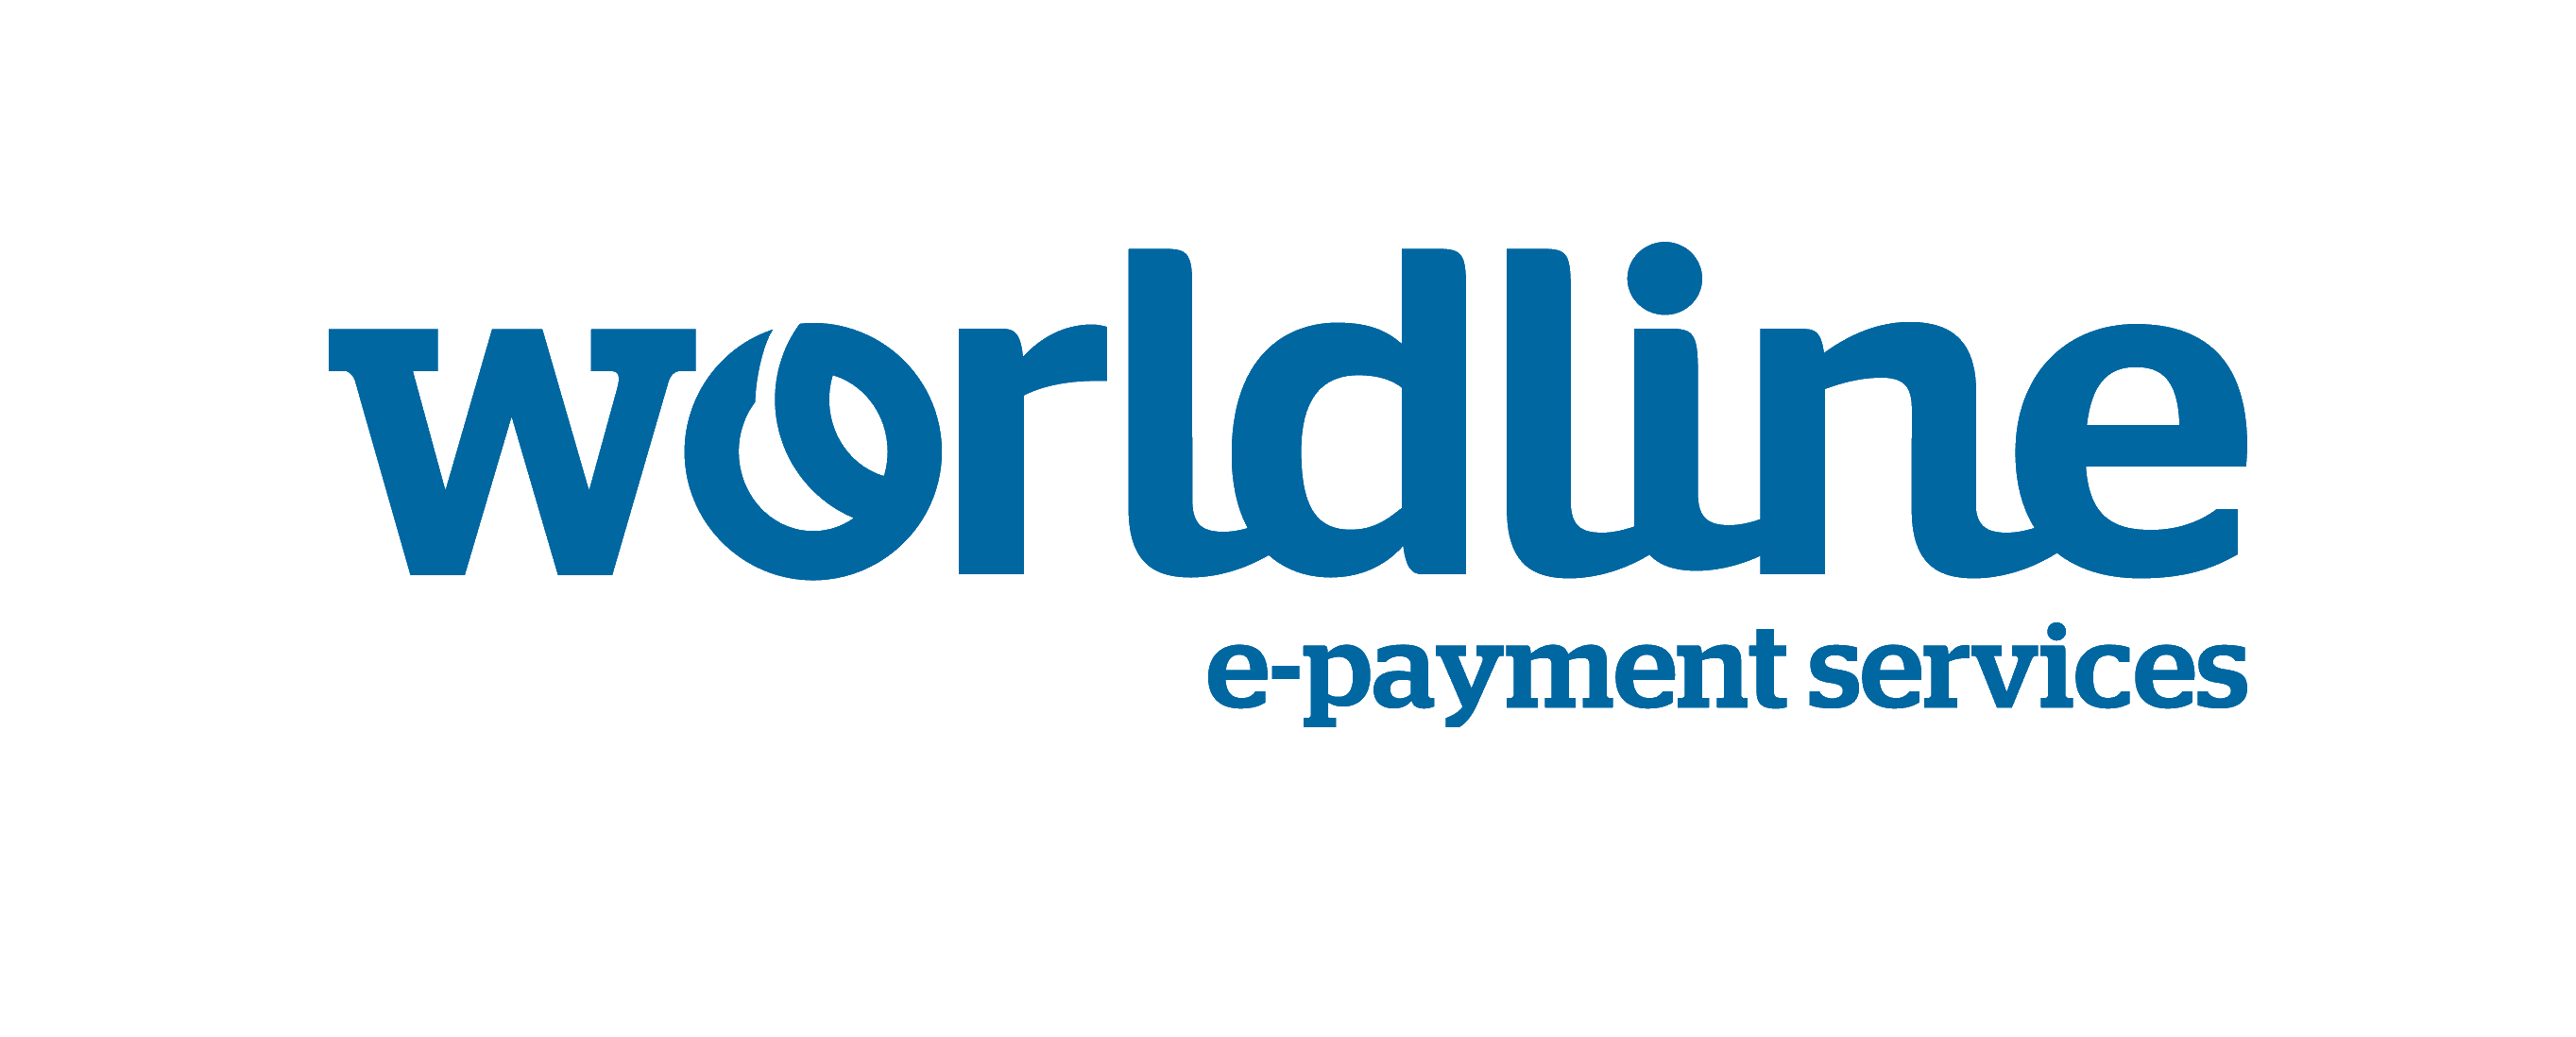 All Things Tech: Worldline Technical Experts Unveil What's Next in Digital Innovation for the Payments Industry in Their in-house Worldline TeX Show